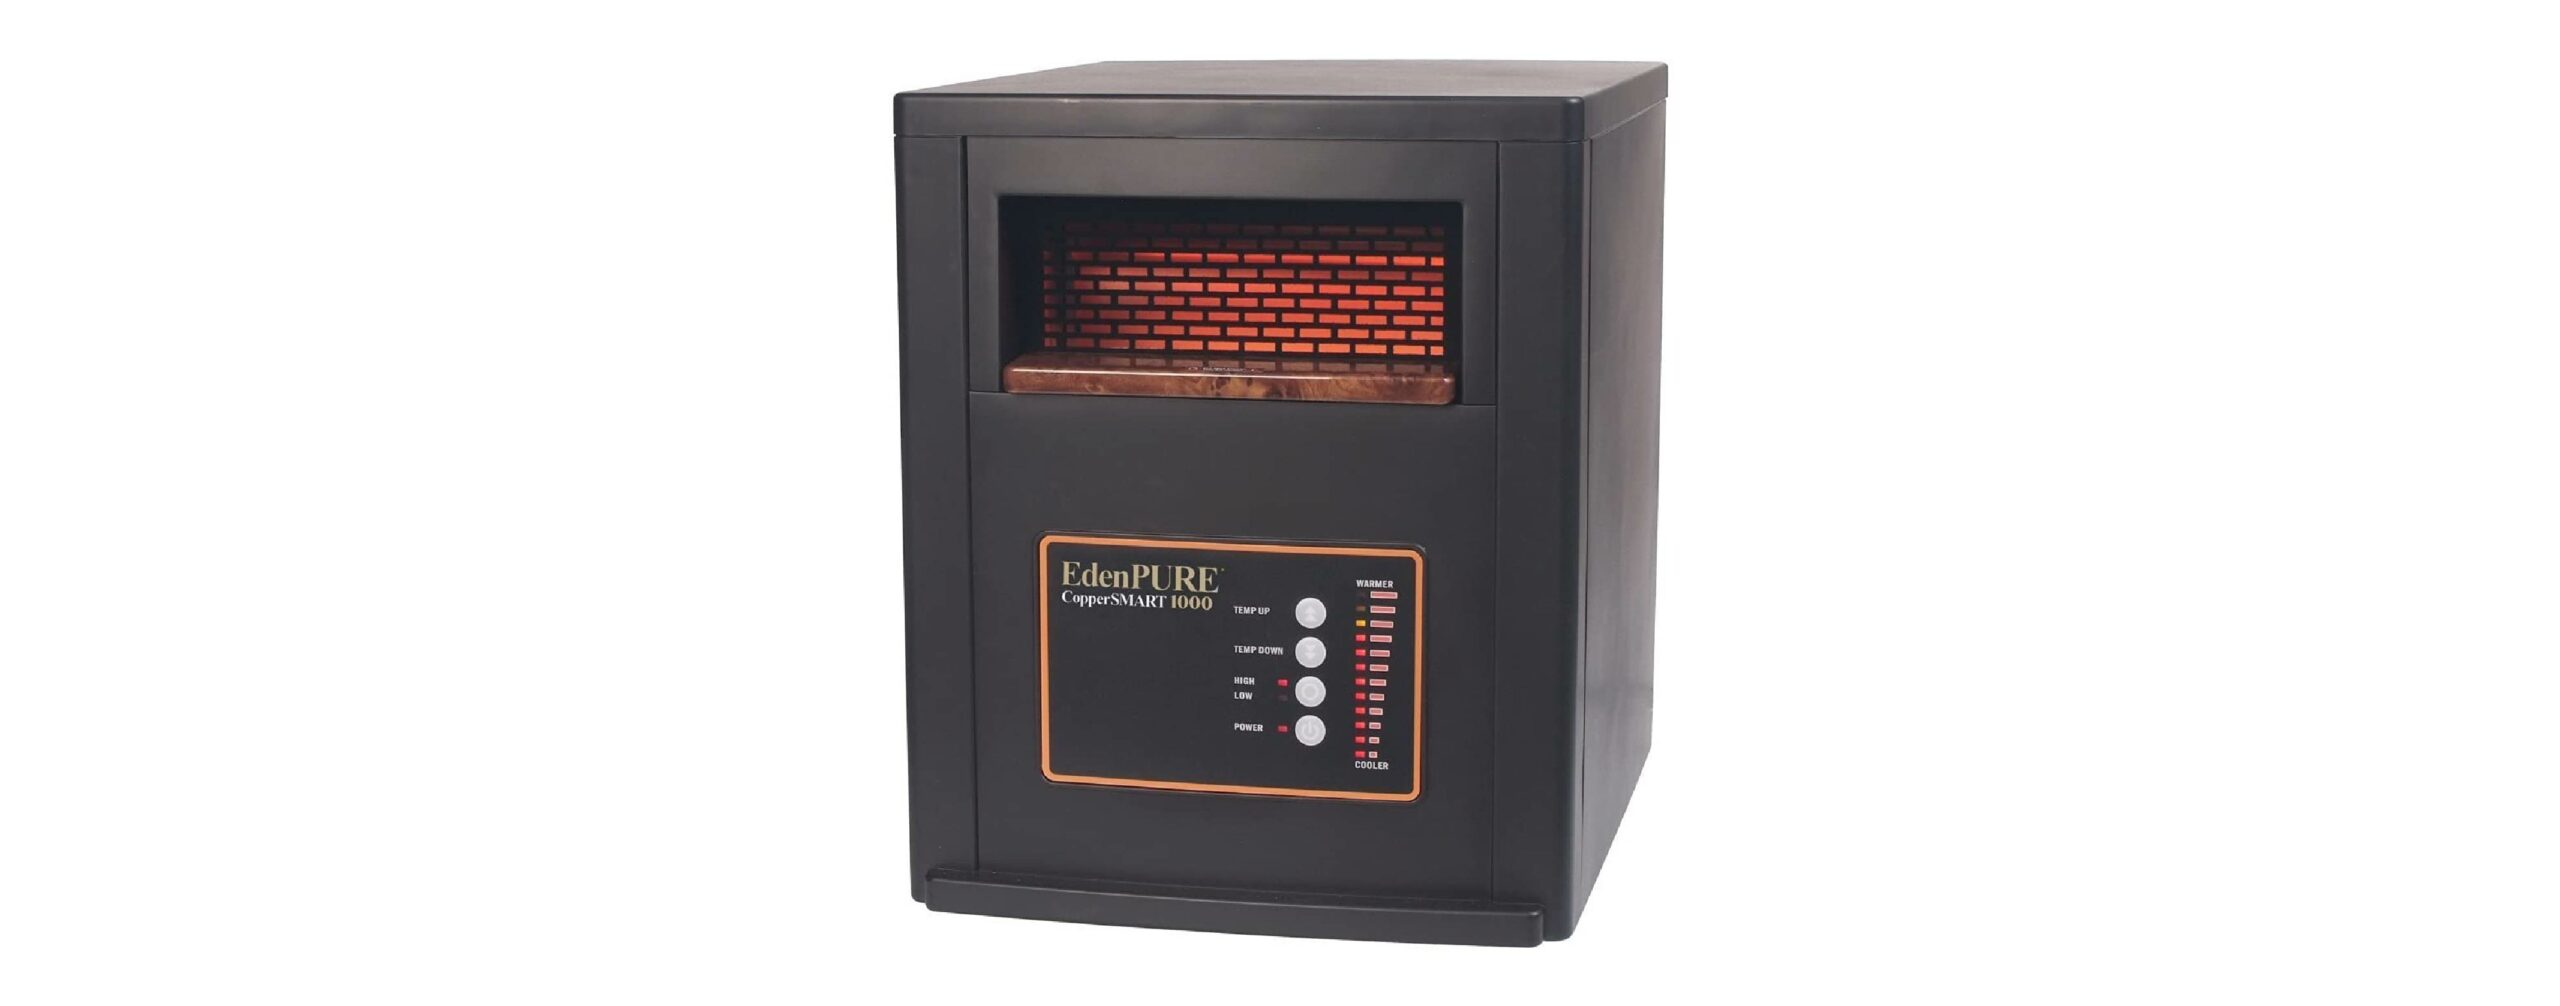 The Best Infrared Heaters (Review & Buying Guide) 2021